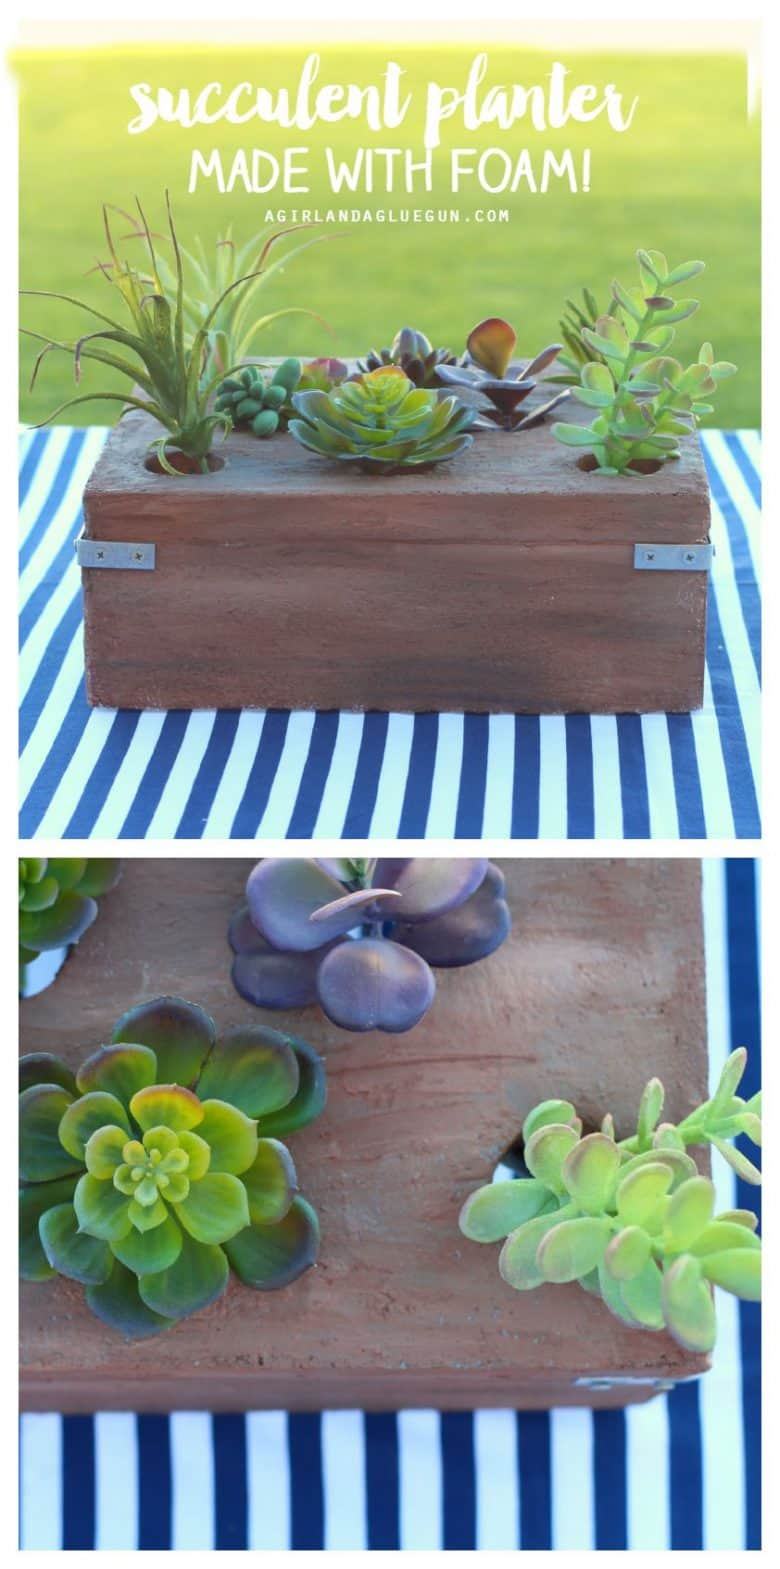 succulent planter made with foam!